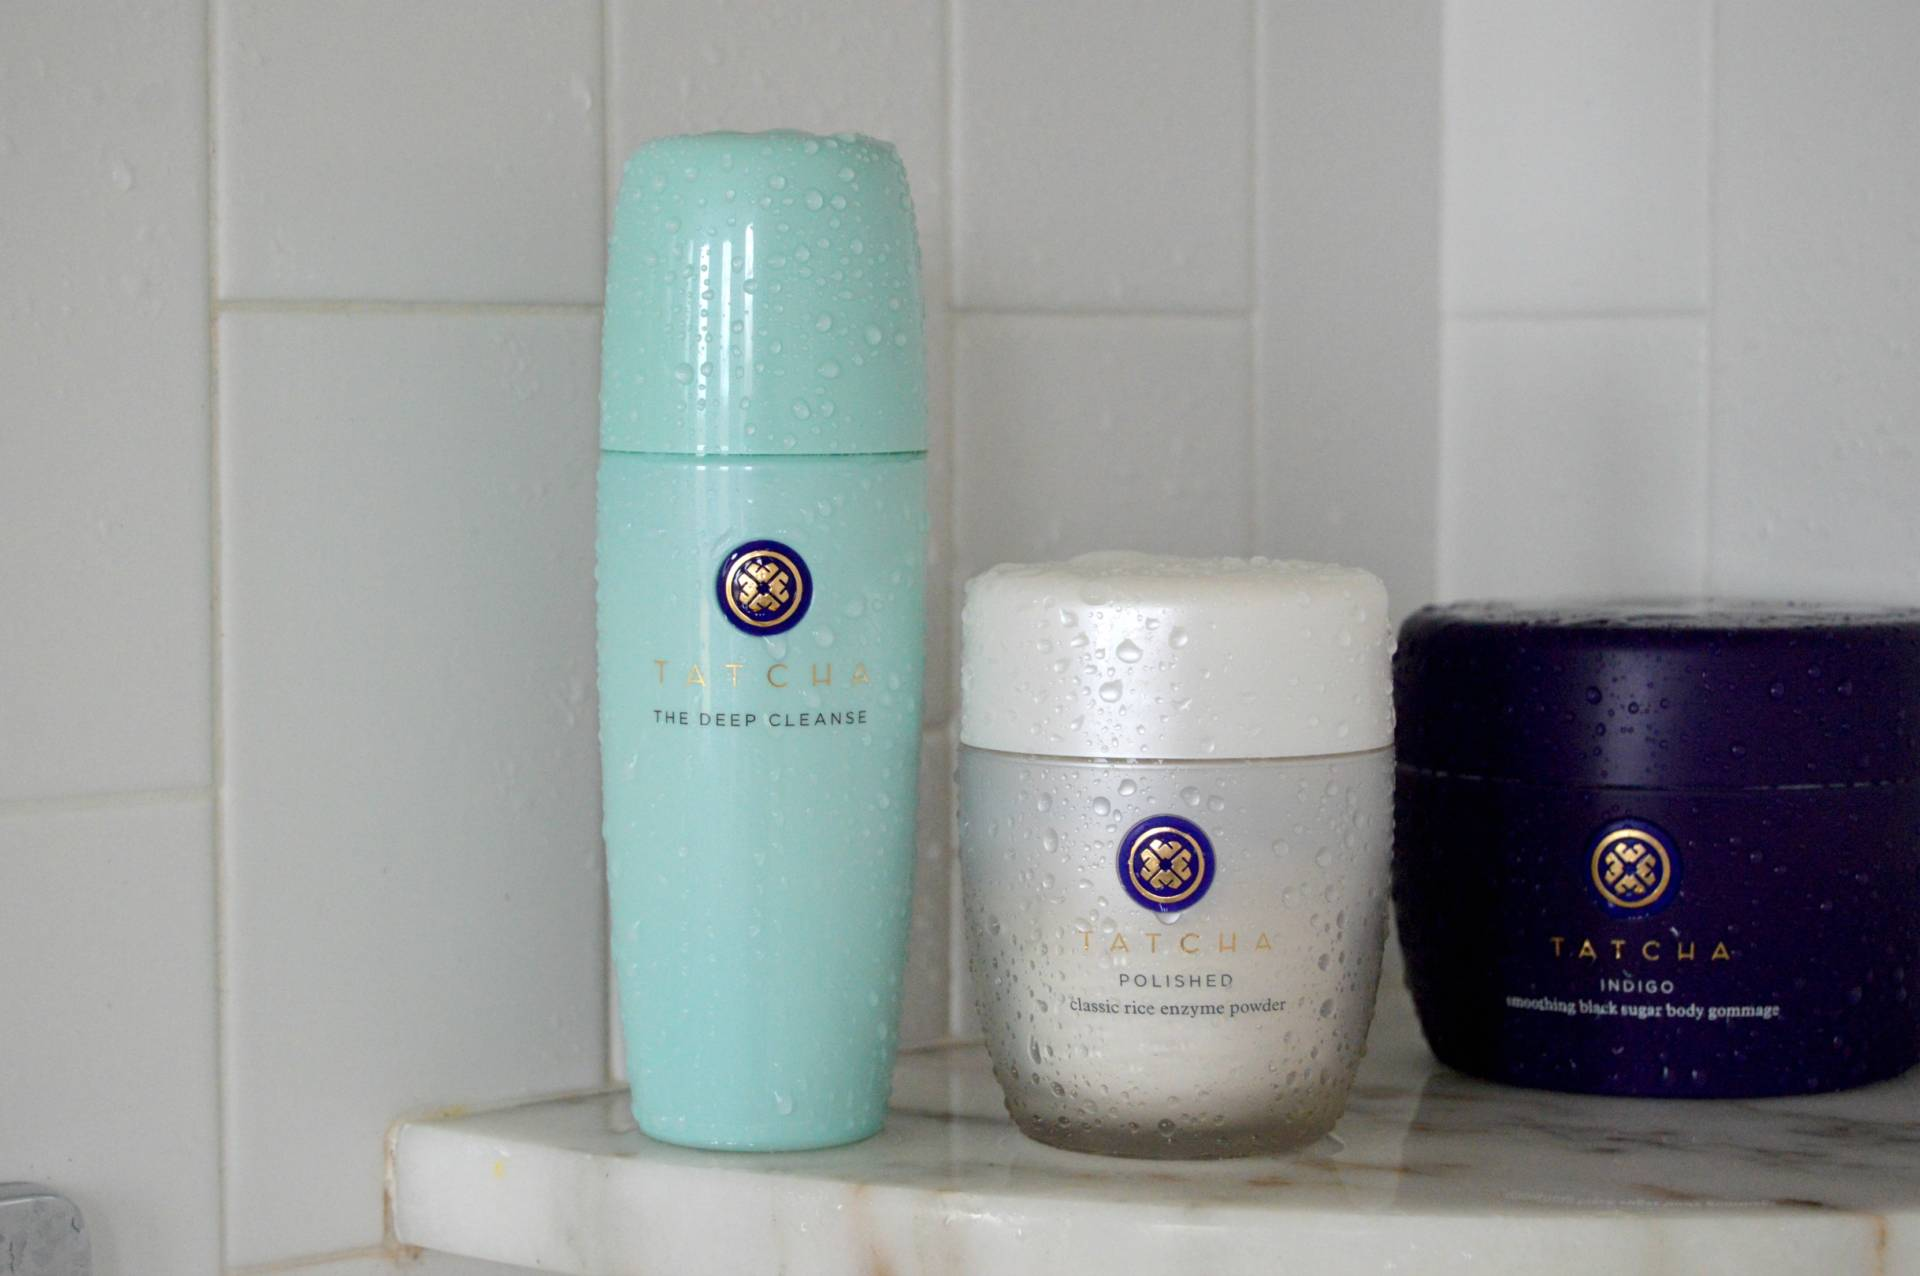 Omgbart_Reviews_The_Deep_Cleanse_From_Tatcha_3.jpg